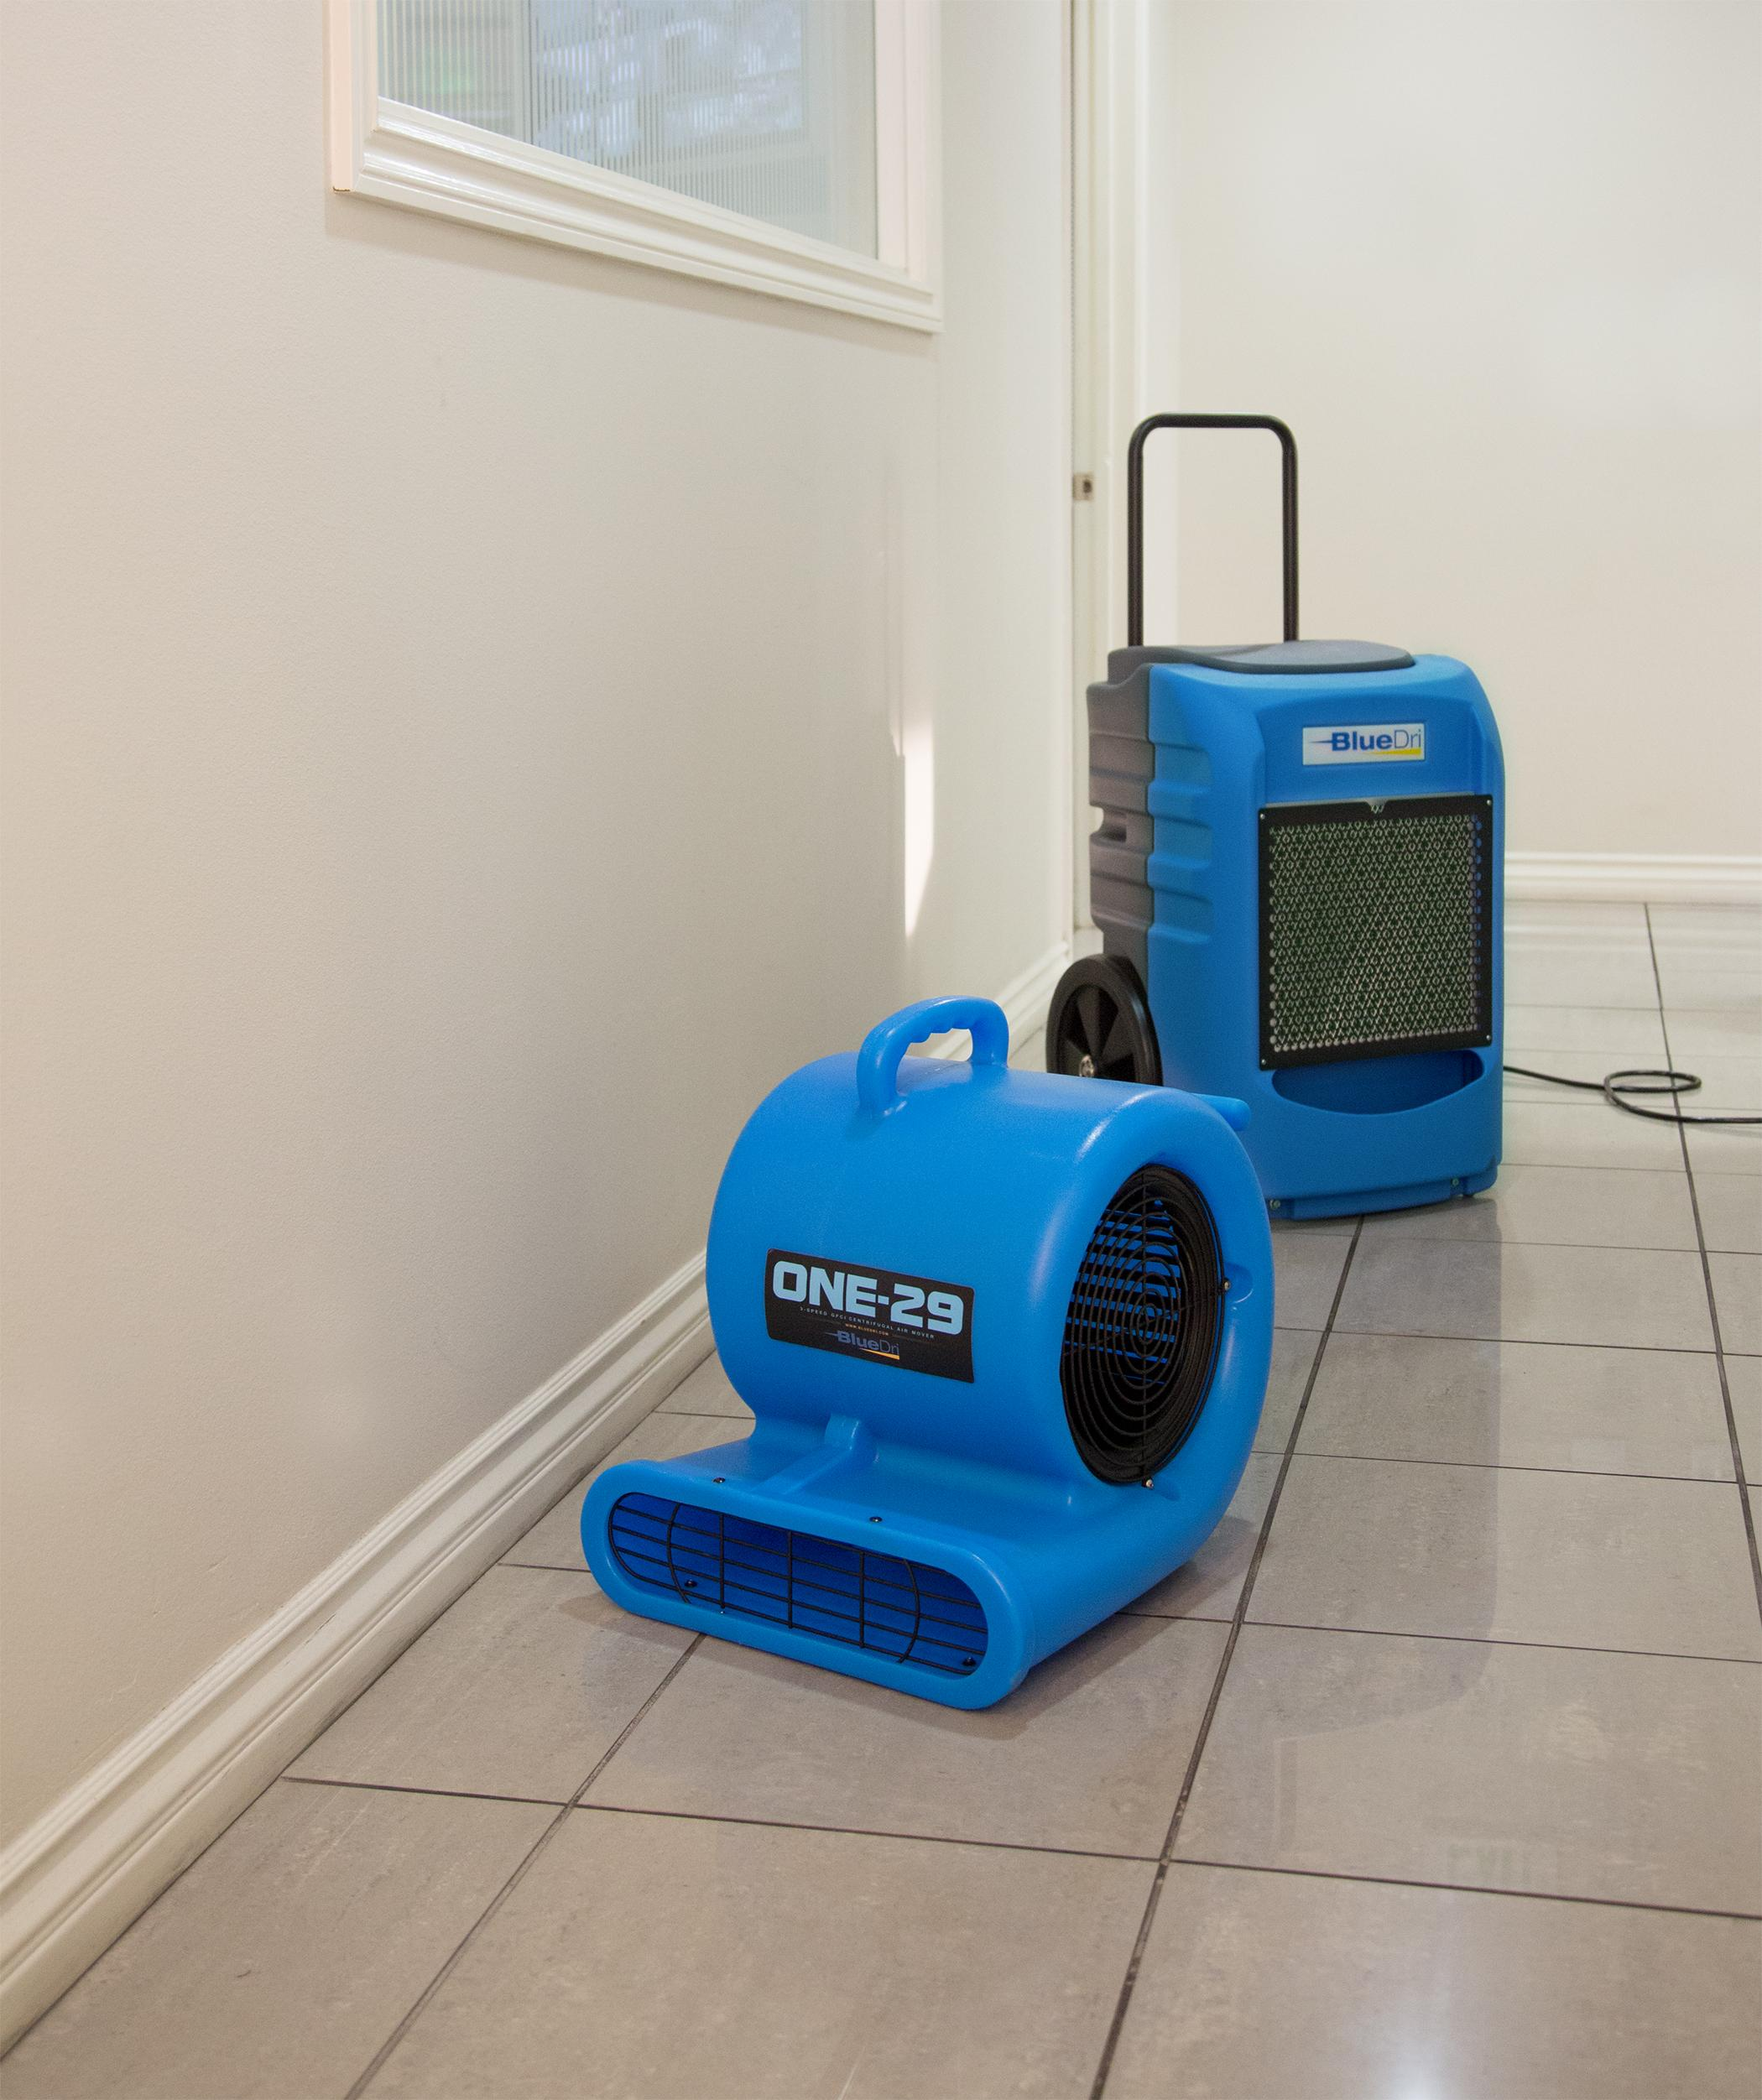 Bluedri One 29 Air Mover Etl Listed Carpet Dryer 3 Speed 2